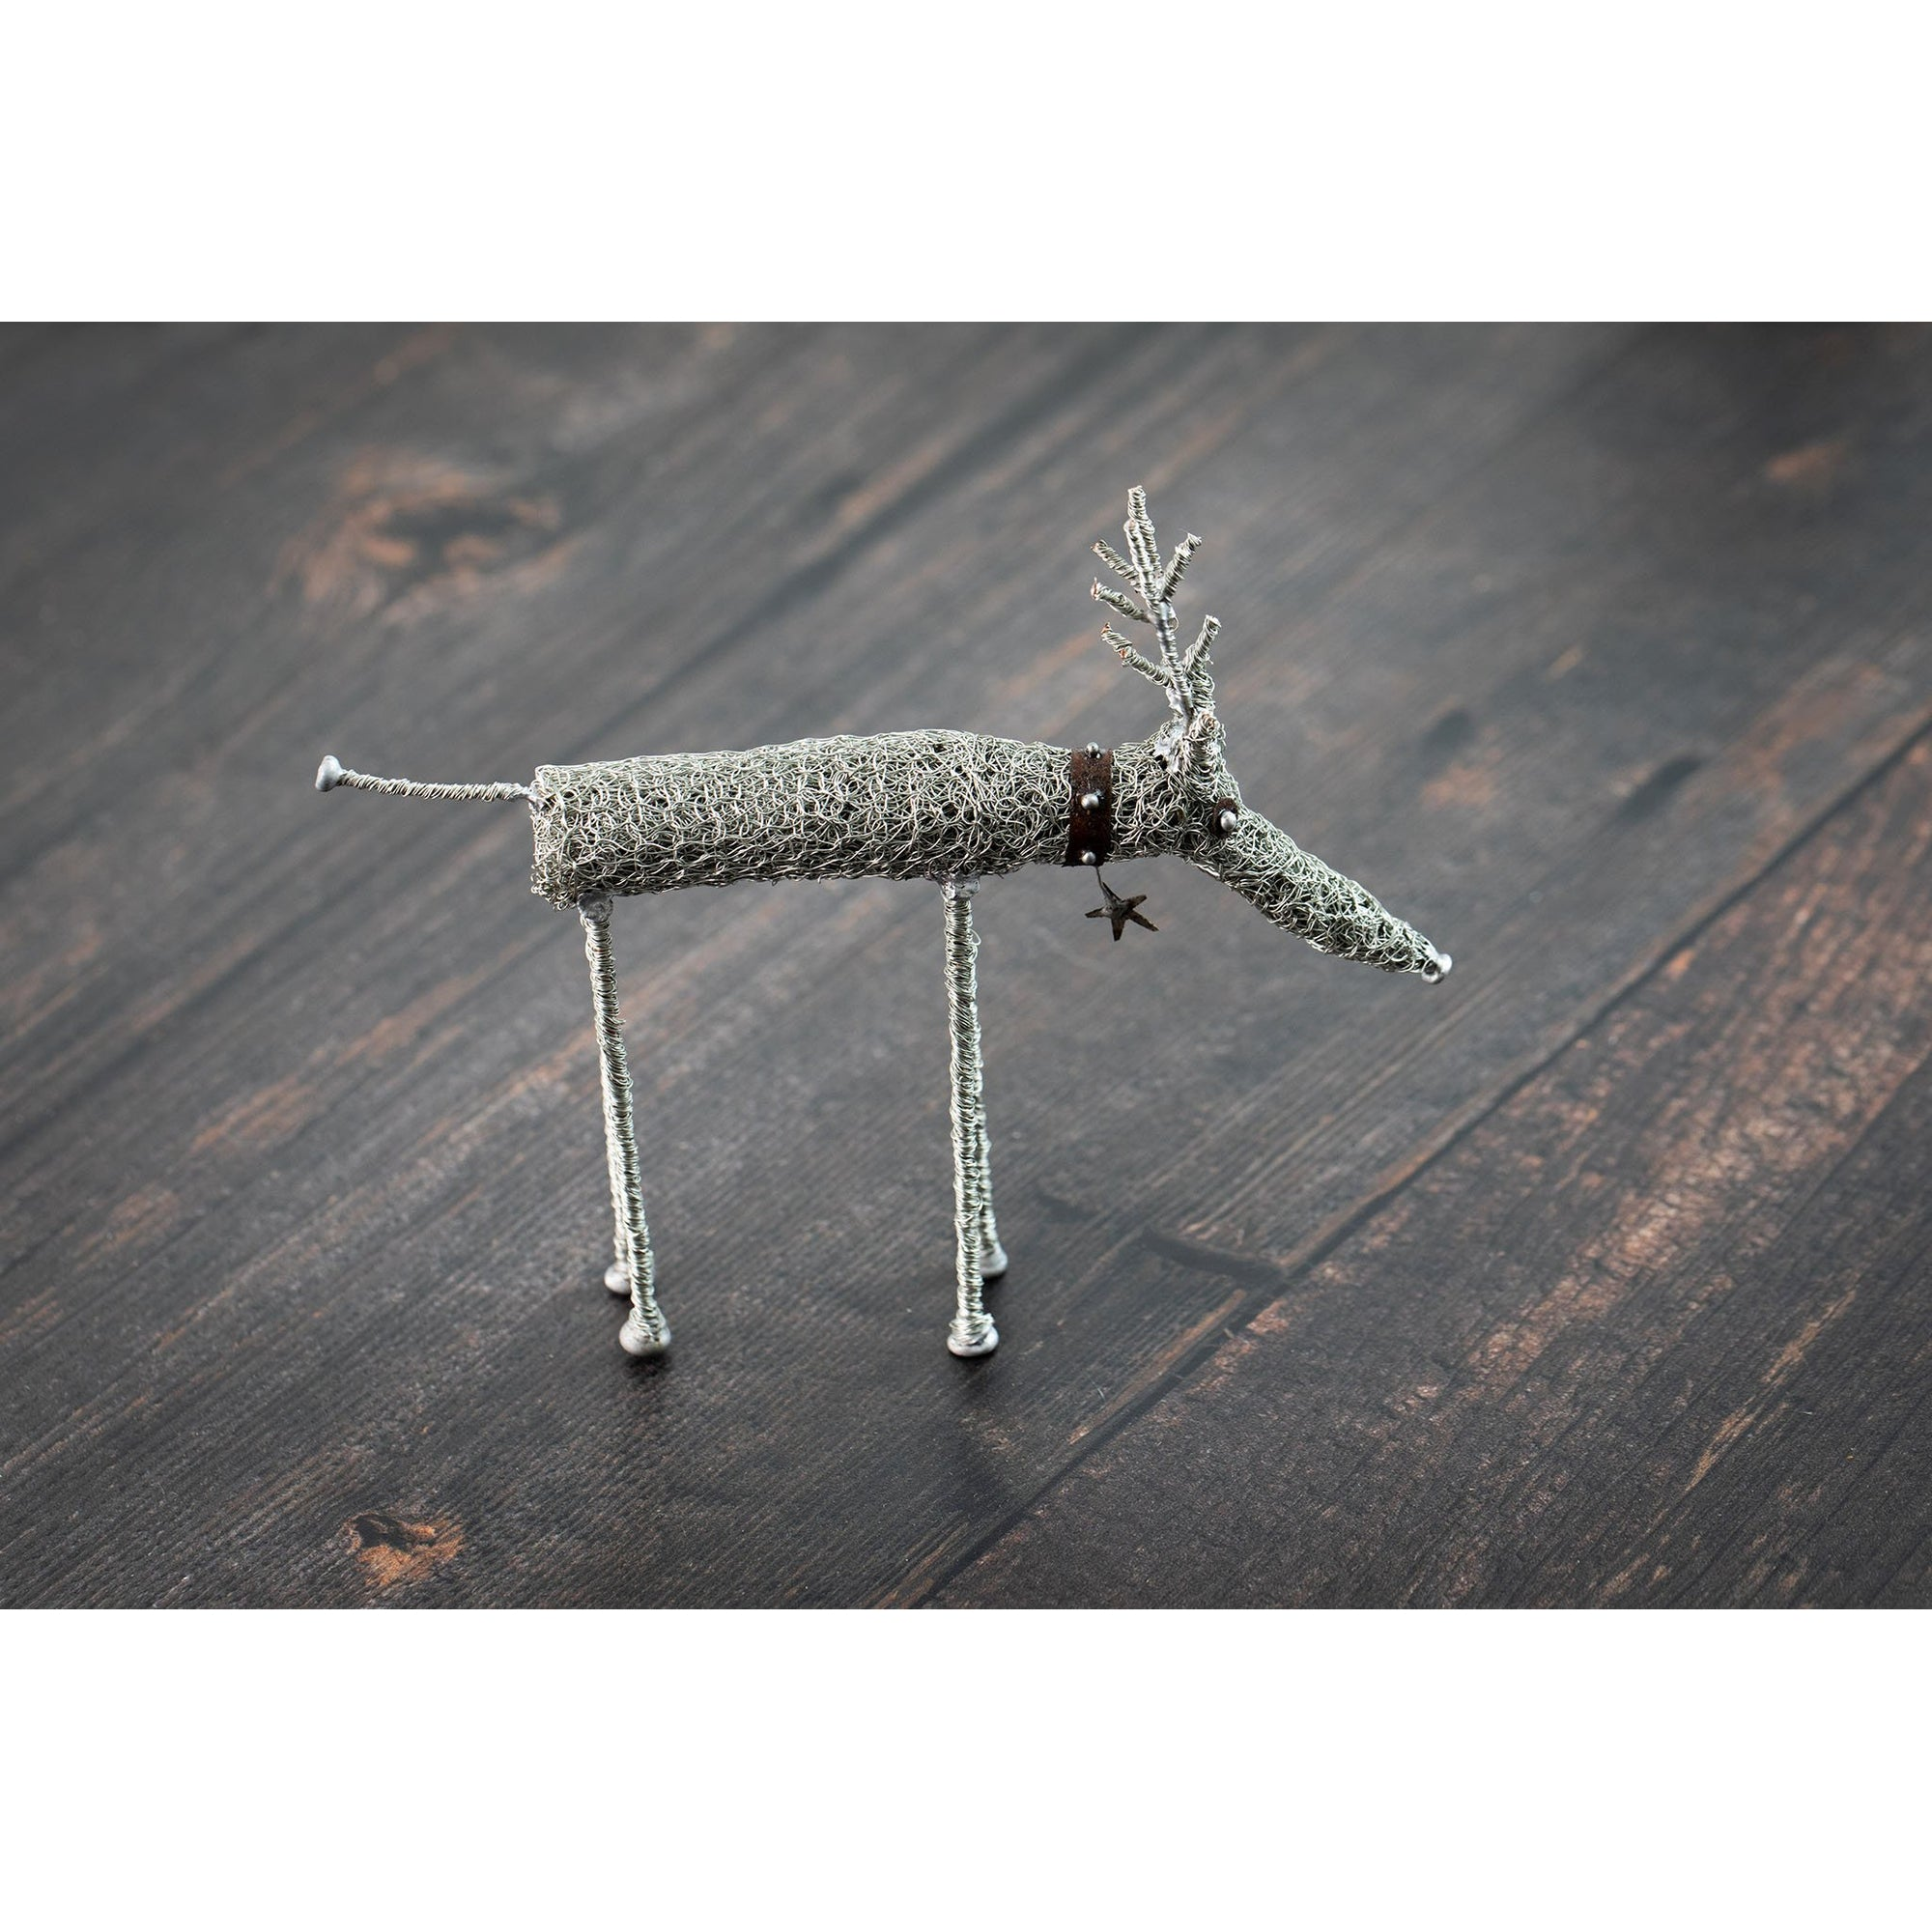 Reindeer by Sarah Jane Brown available at Padstow Gallery, Cornwall